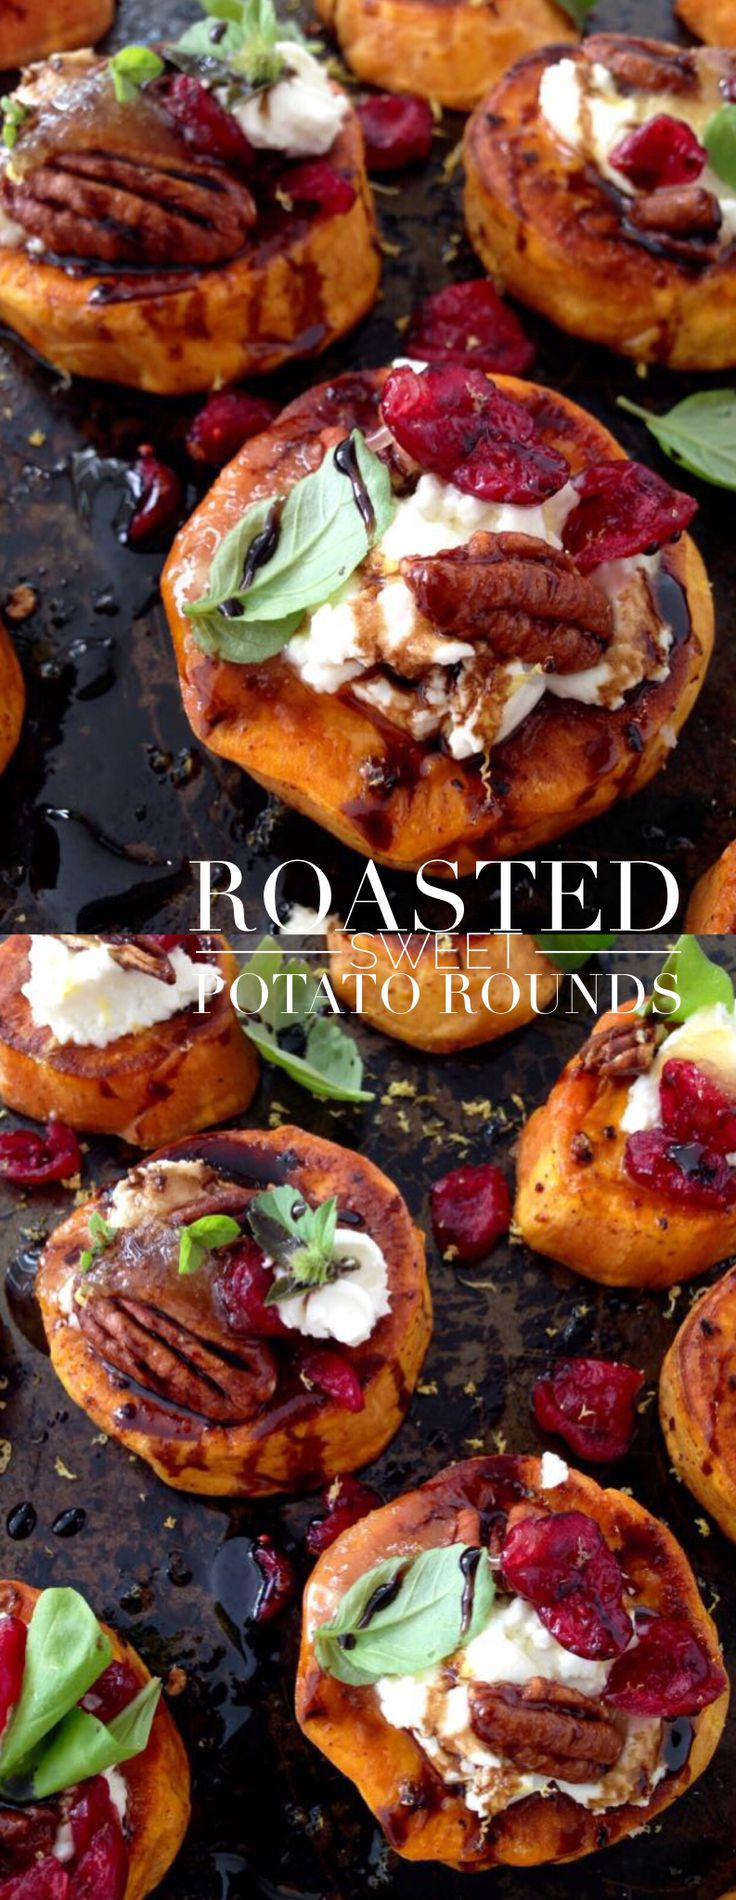 Roasted Sweet Potato Rounds with Goat Cheese, Cranberries and Balsamic Glaze | CiaoFlorentina.com